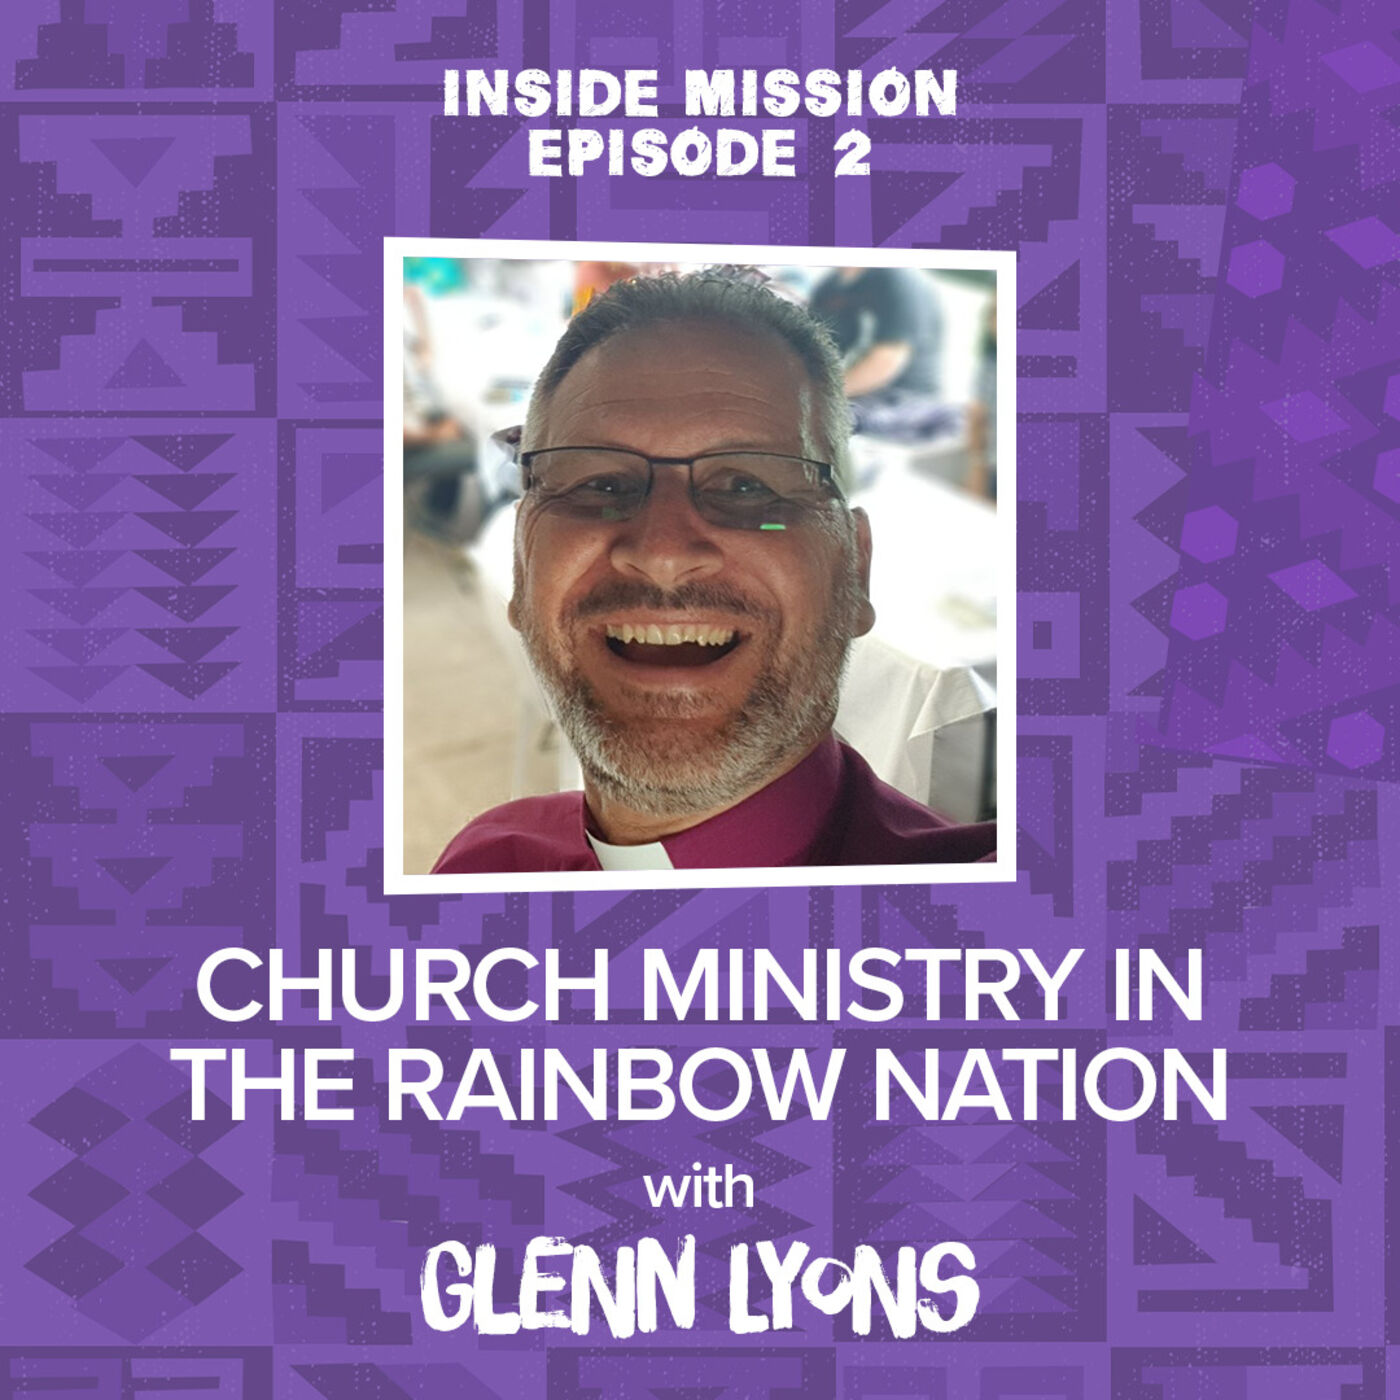 Church ministry in the rainbow nation: a conversation with Glenn Lyons